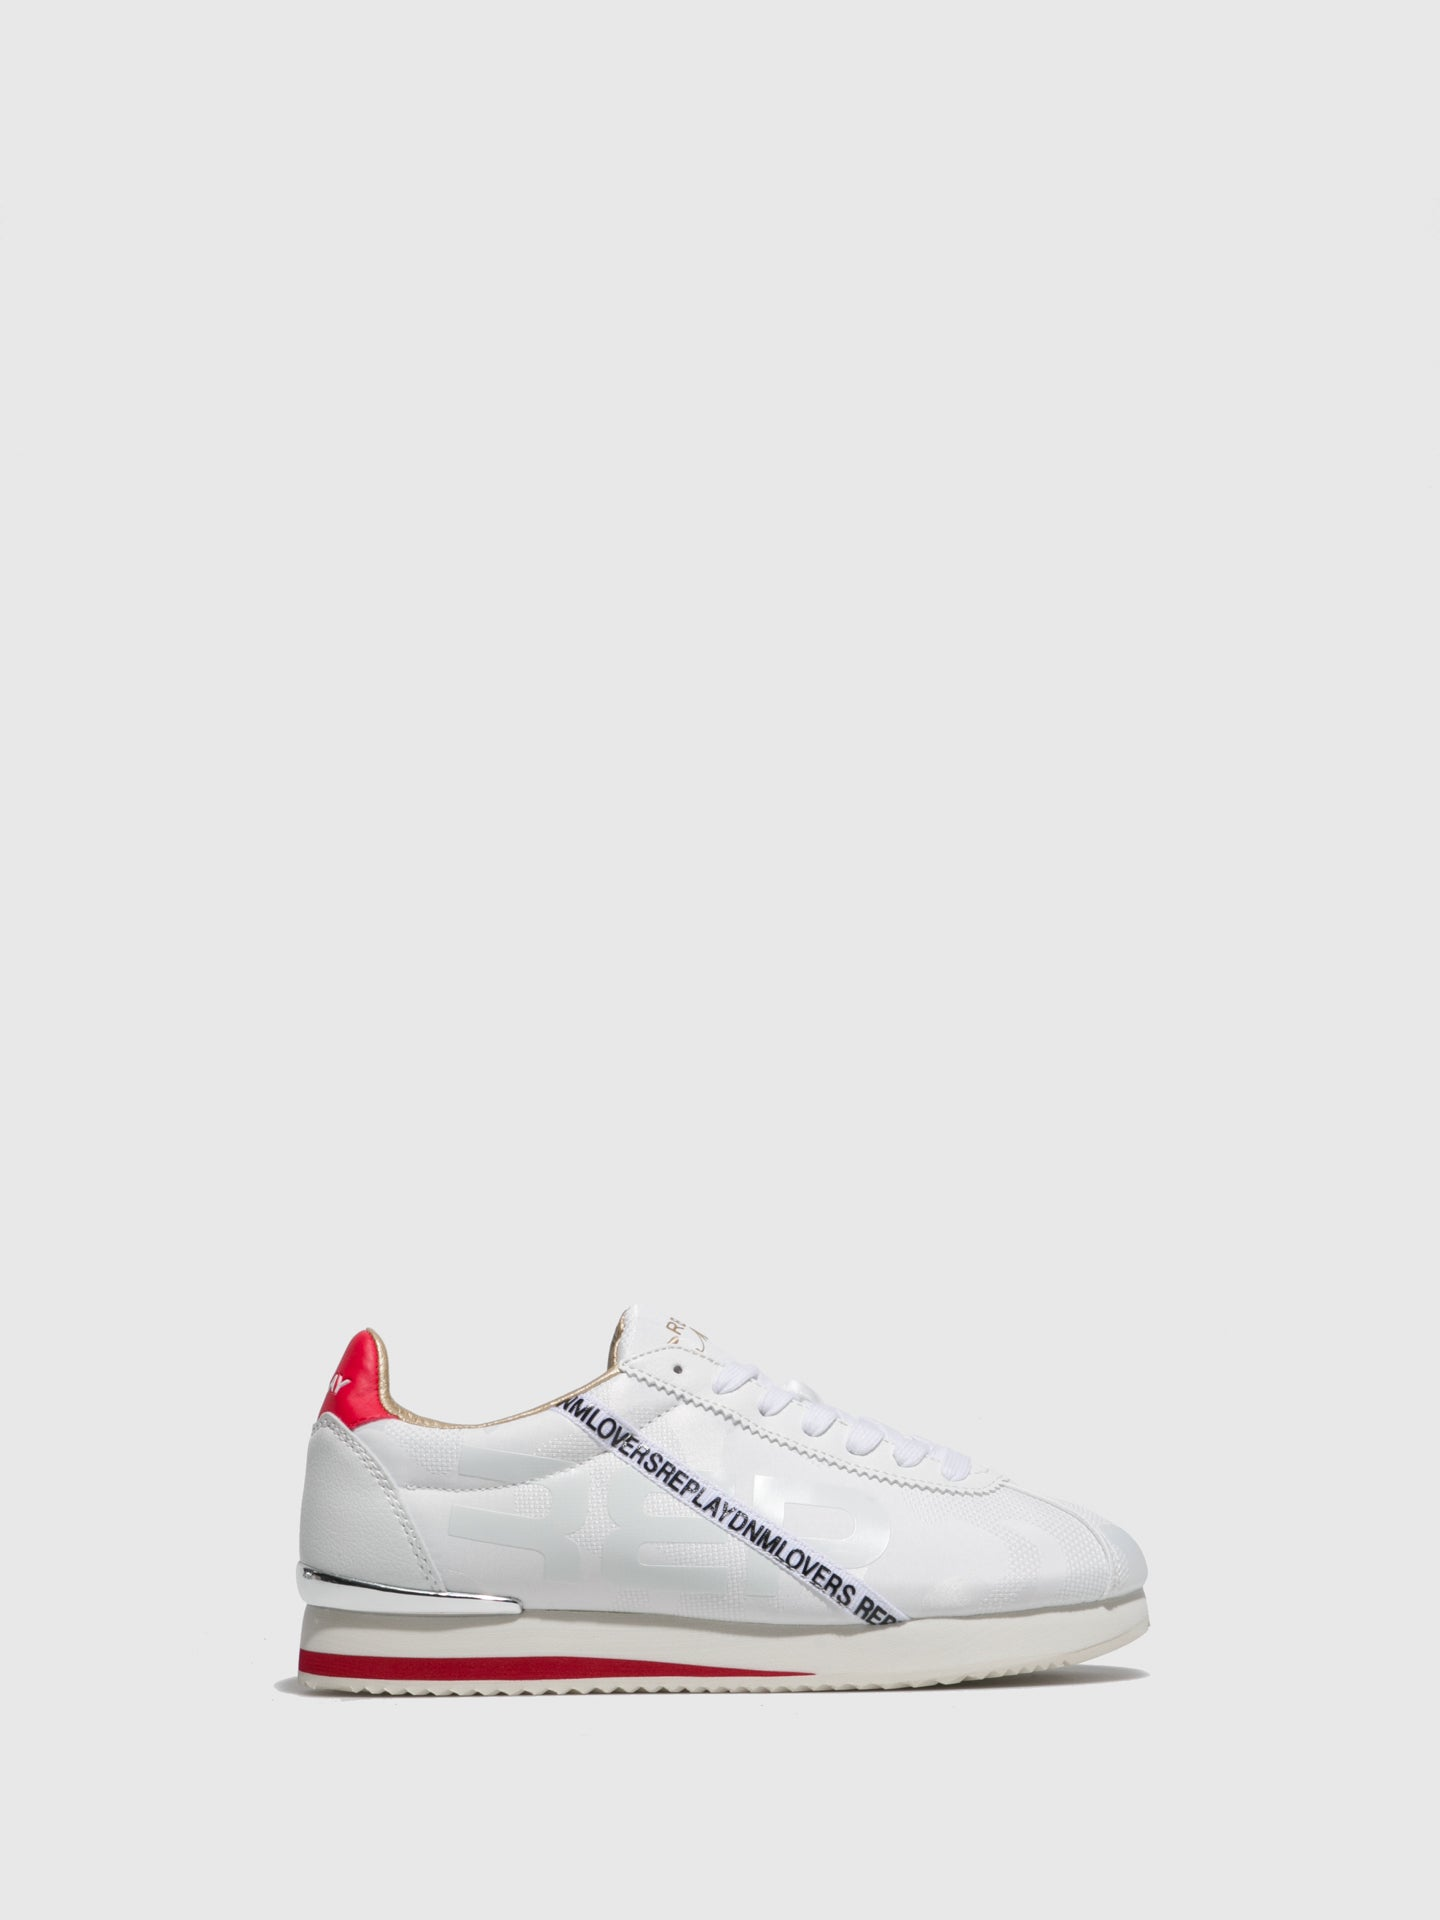 Replay White Lace-up Trainers